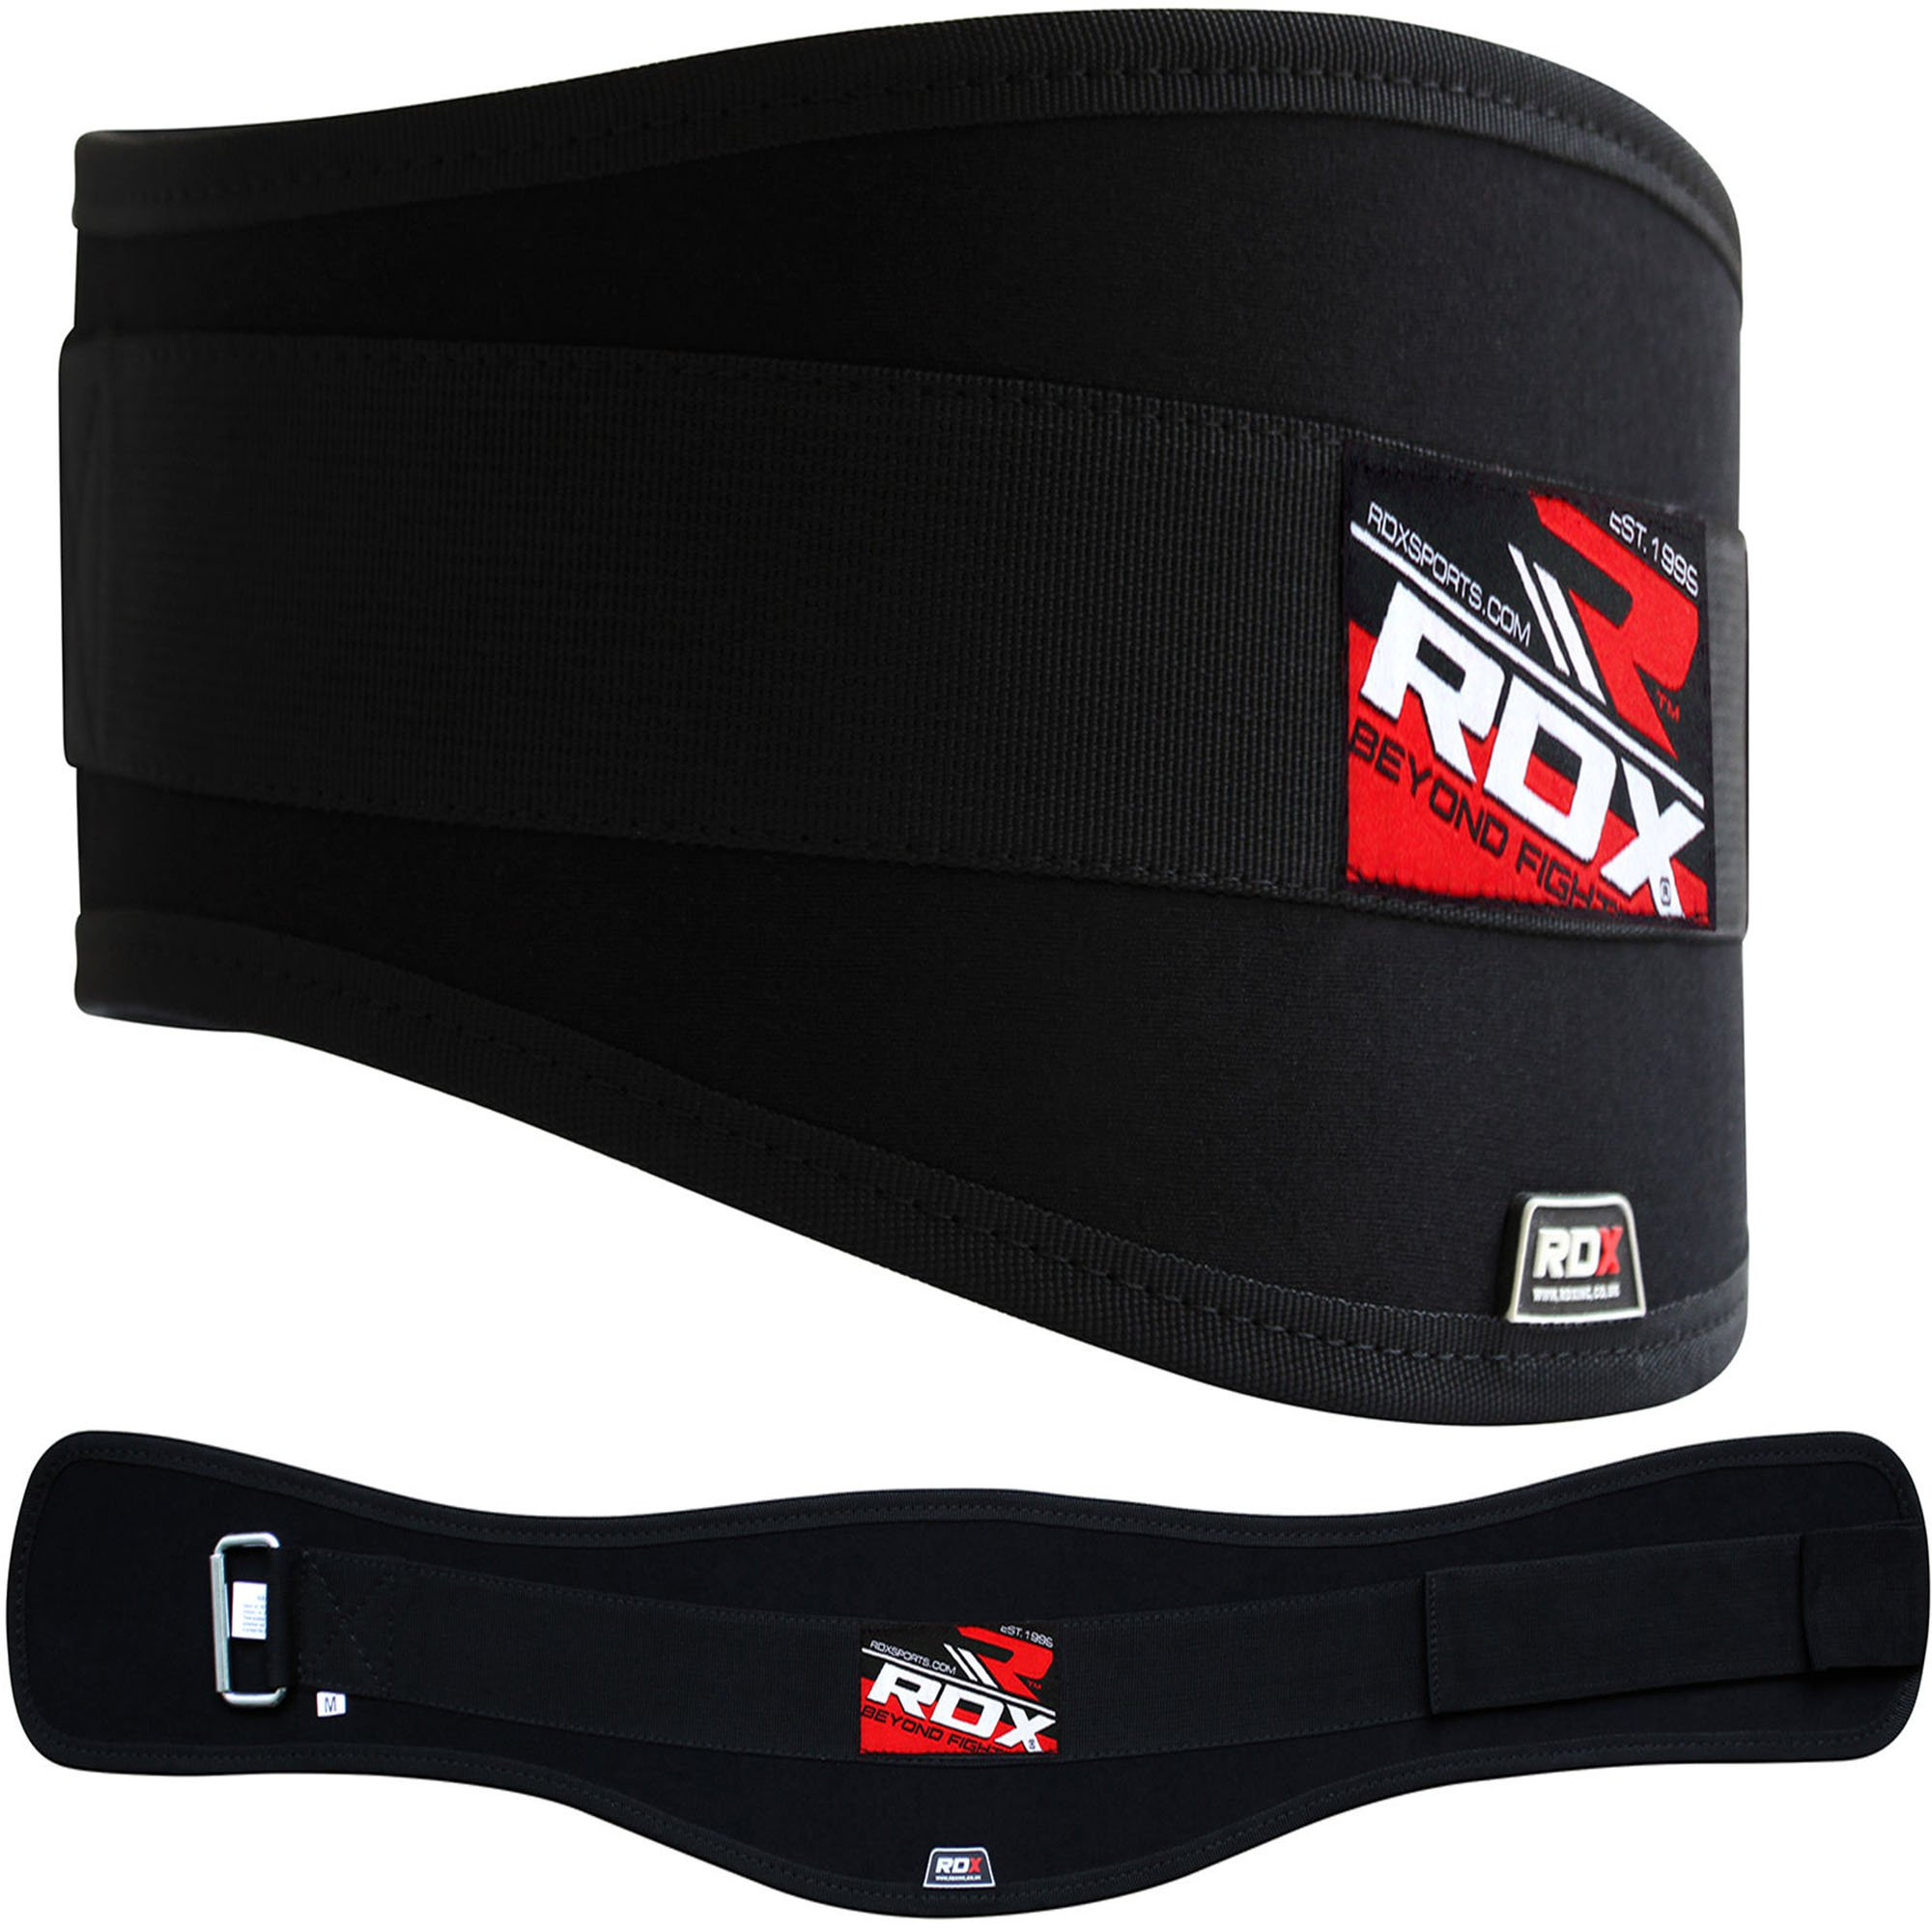 RDX Weight Lifting Neoprene Curve Belt, Black, Large